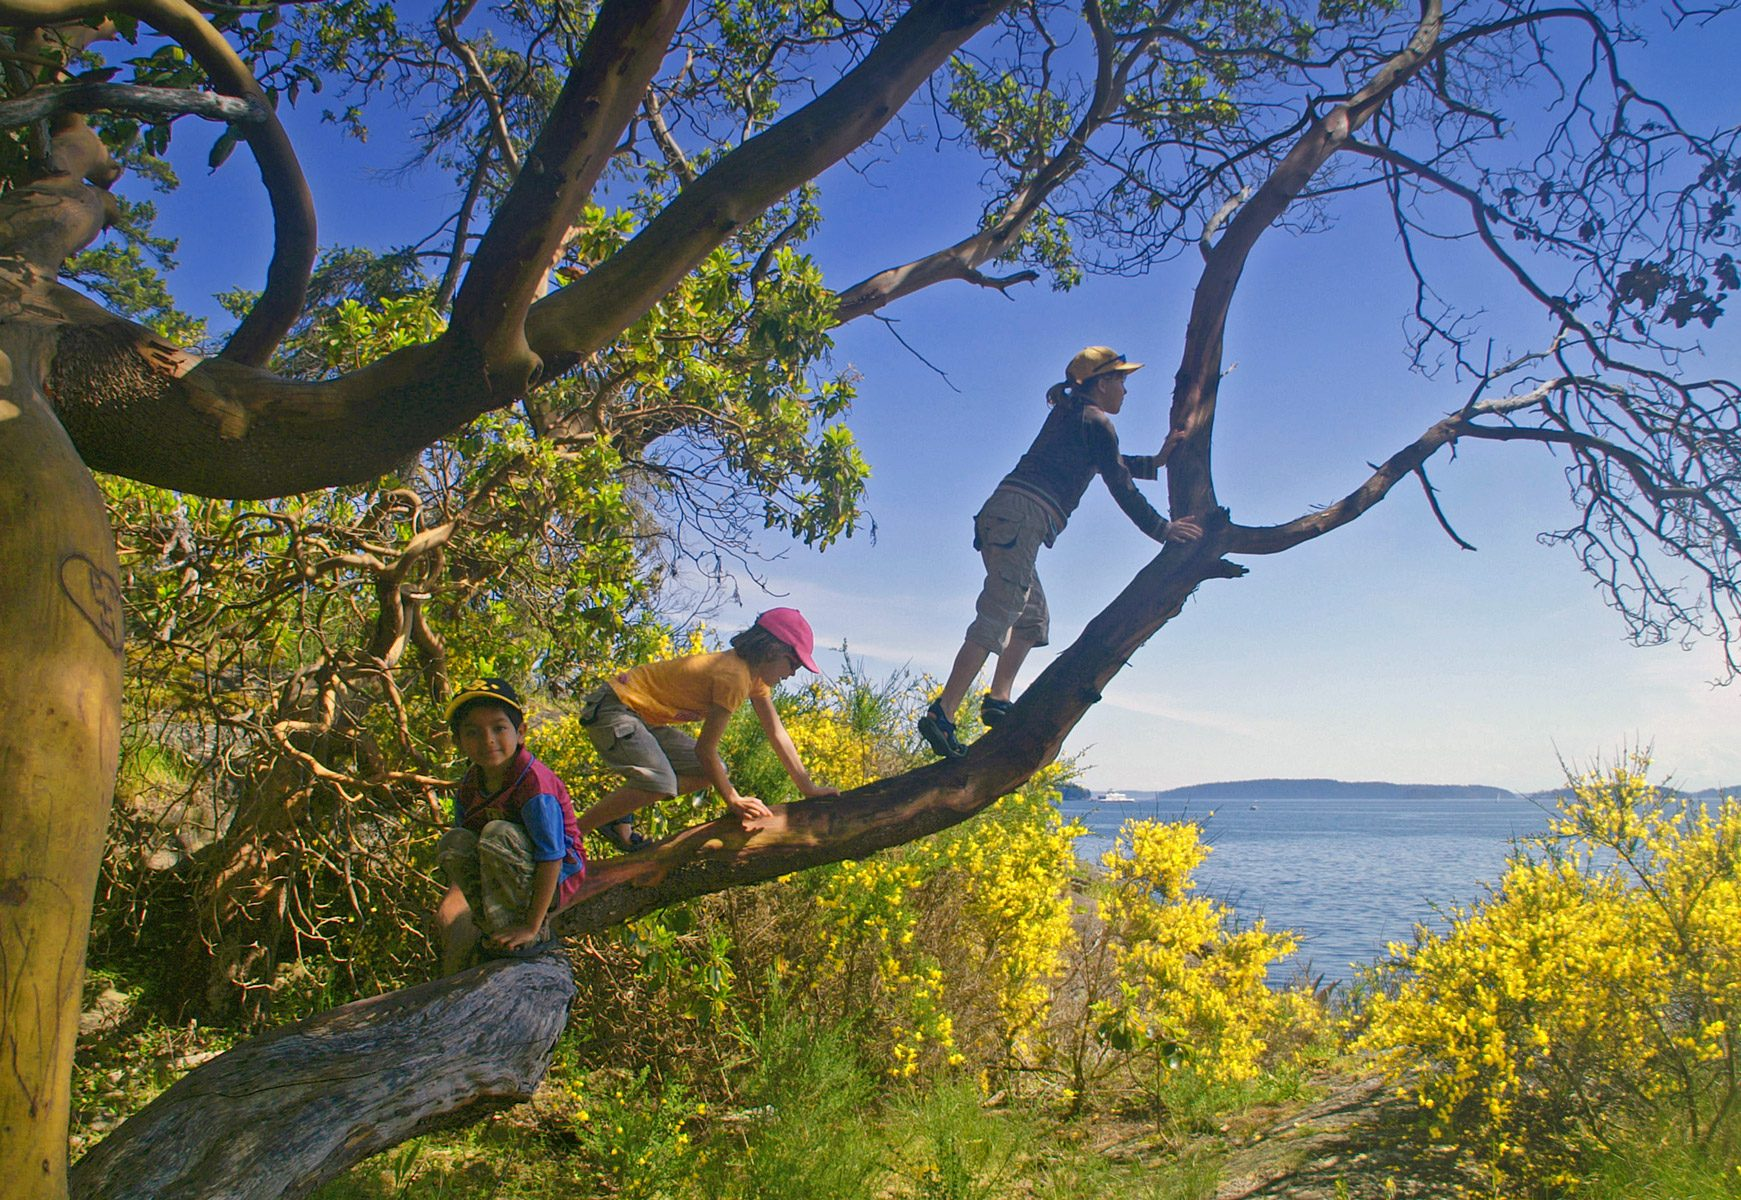 The best trees to climb...